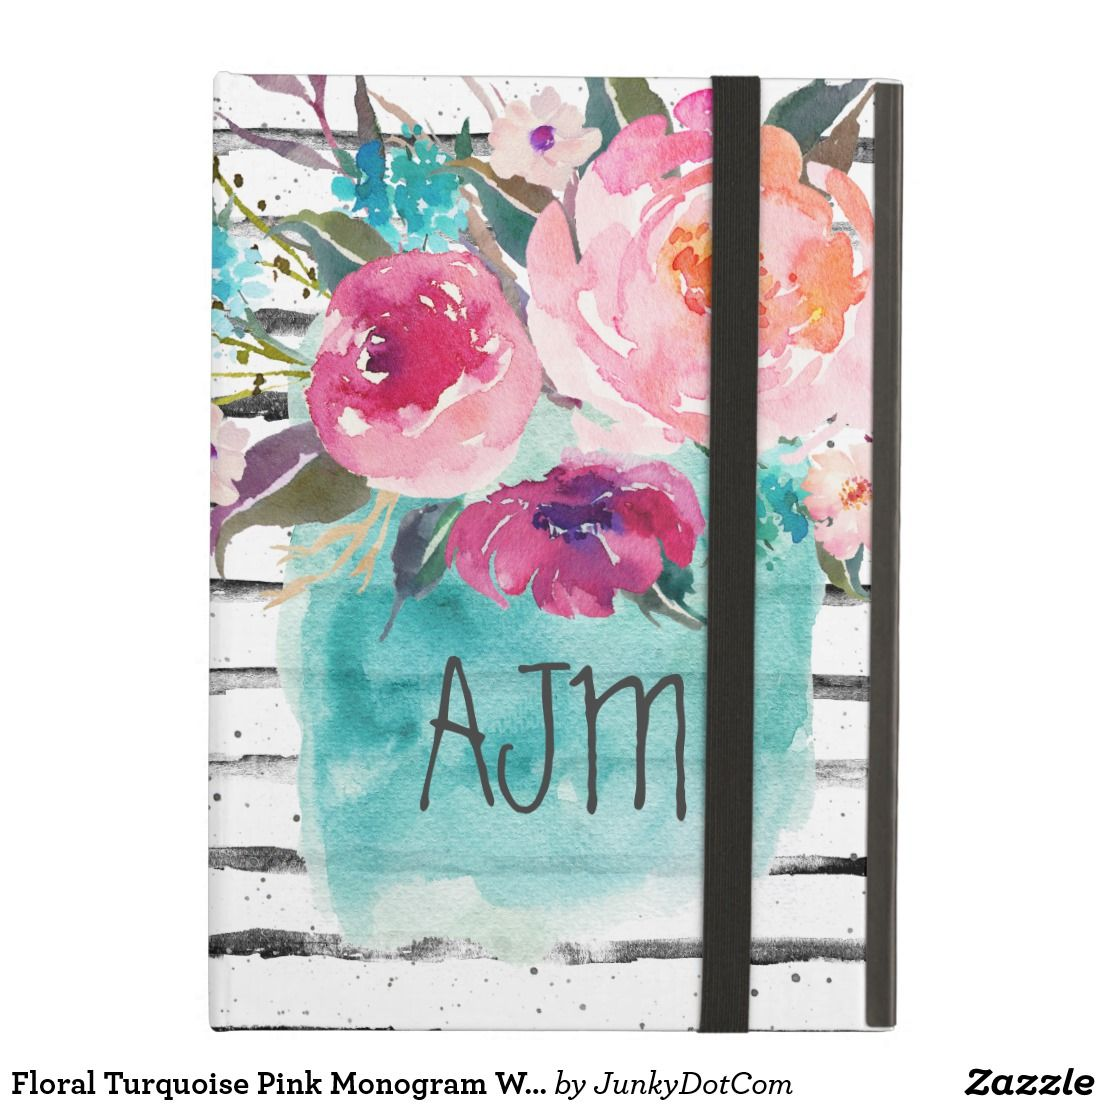 Floral Turquoise Pink Monogram Watercolor Bouquet Cover For iPad Air April 28 2017 #spring #junkydotcom